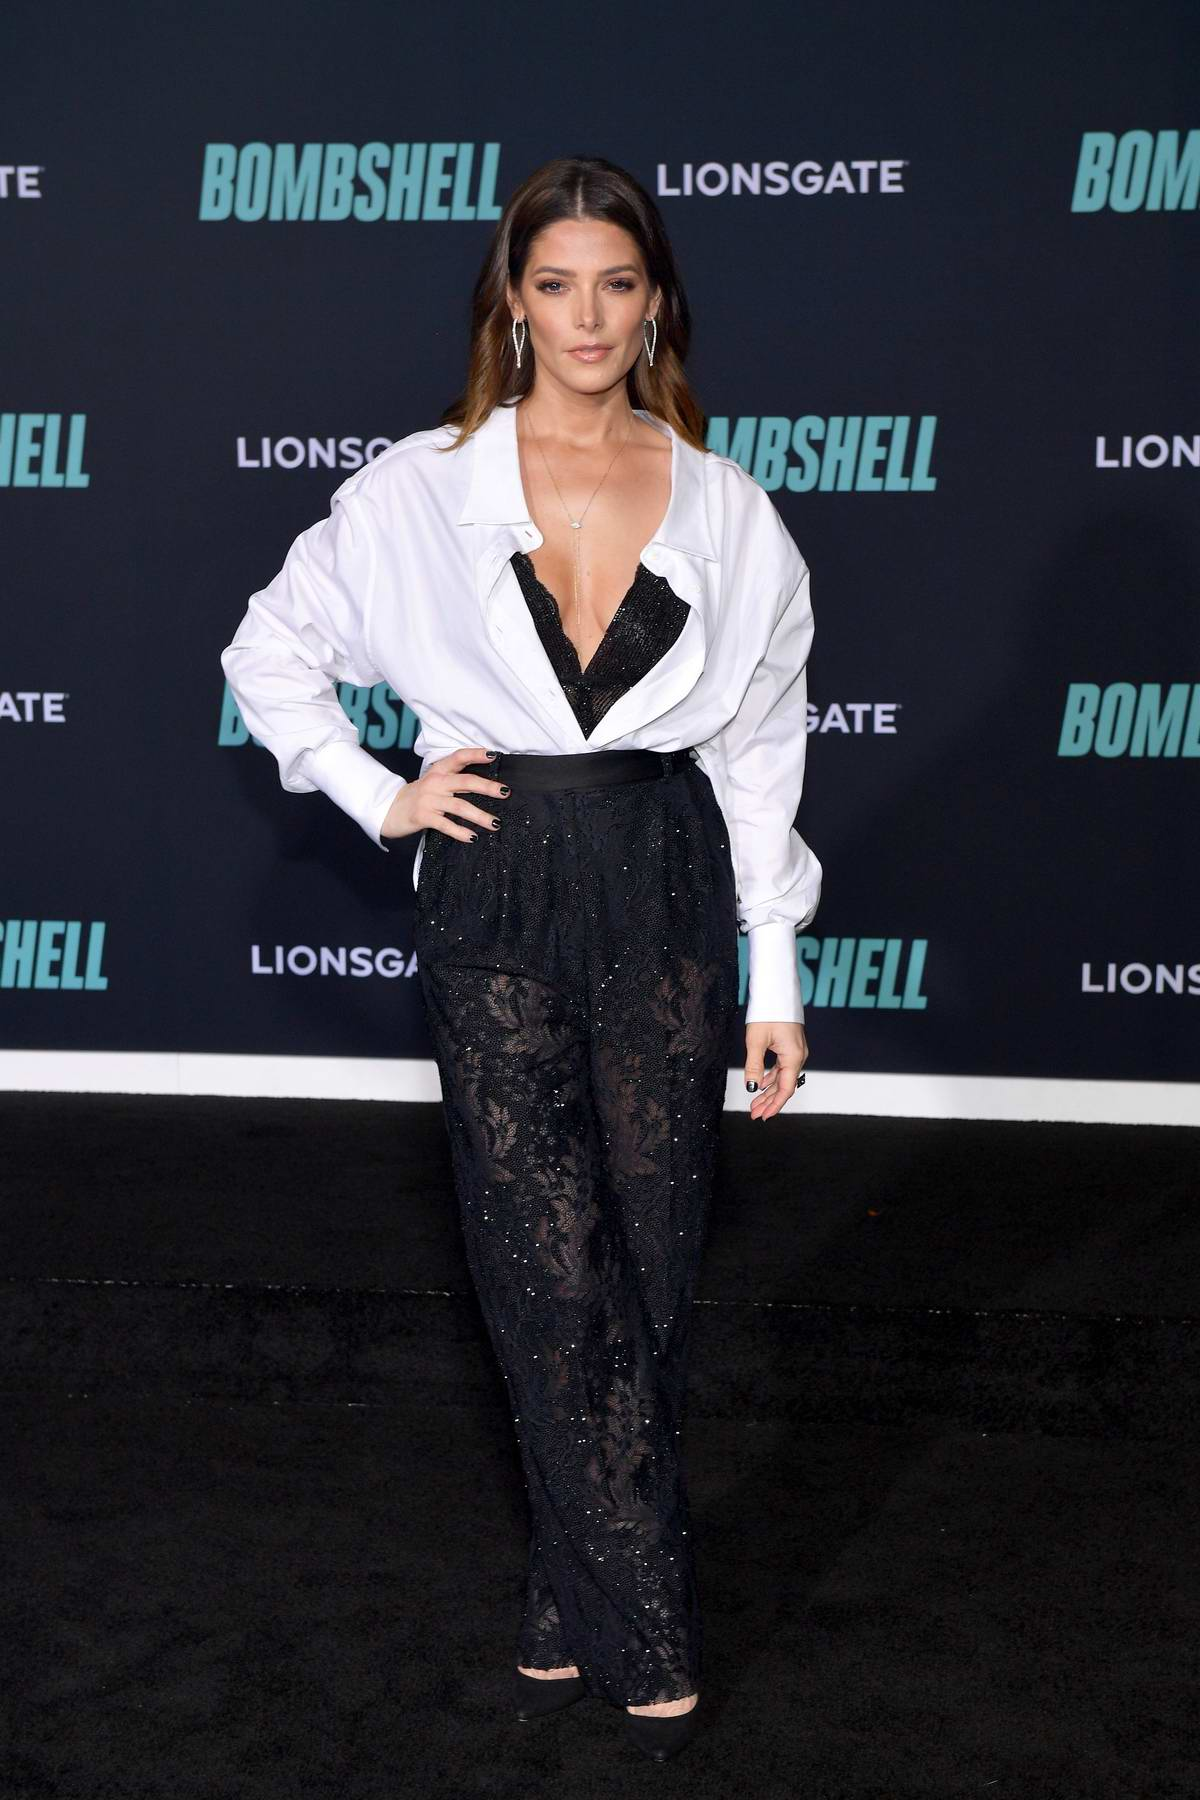 Ashley Greene attends a special screening of Bombshell in Westwood, California